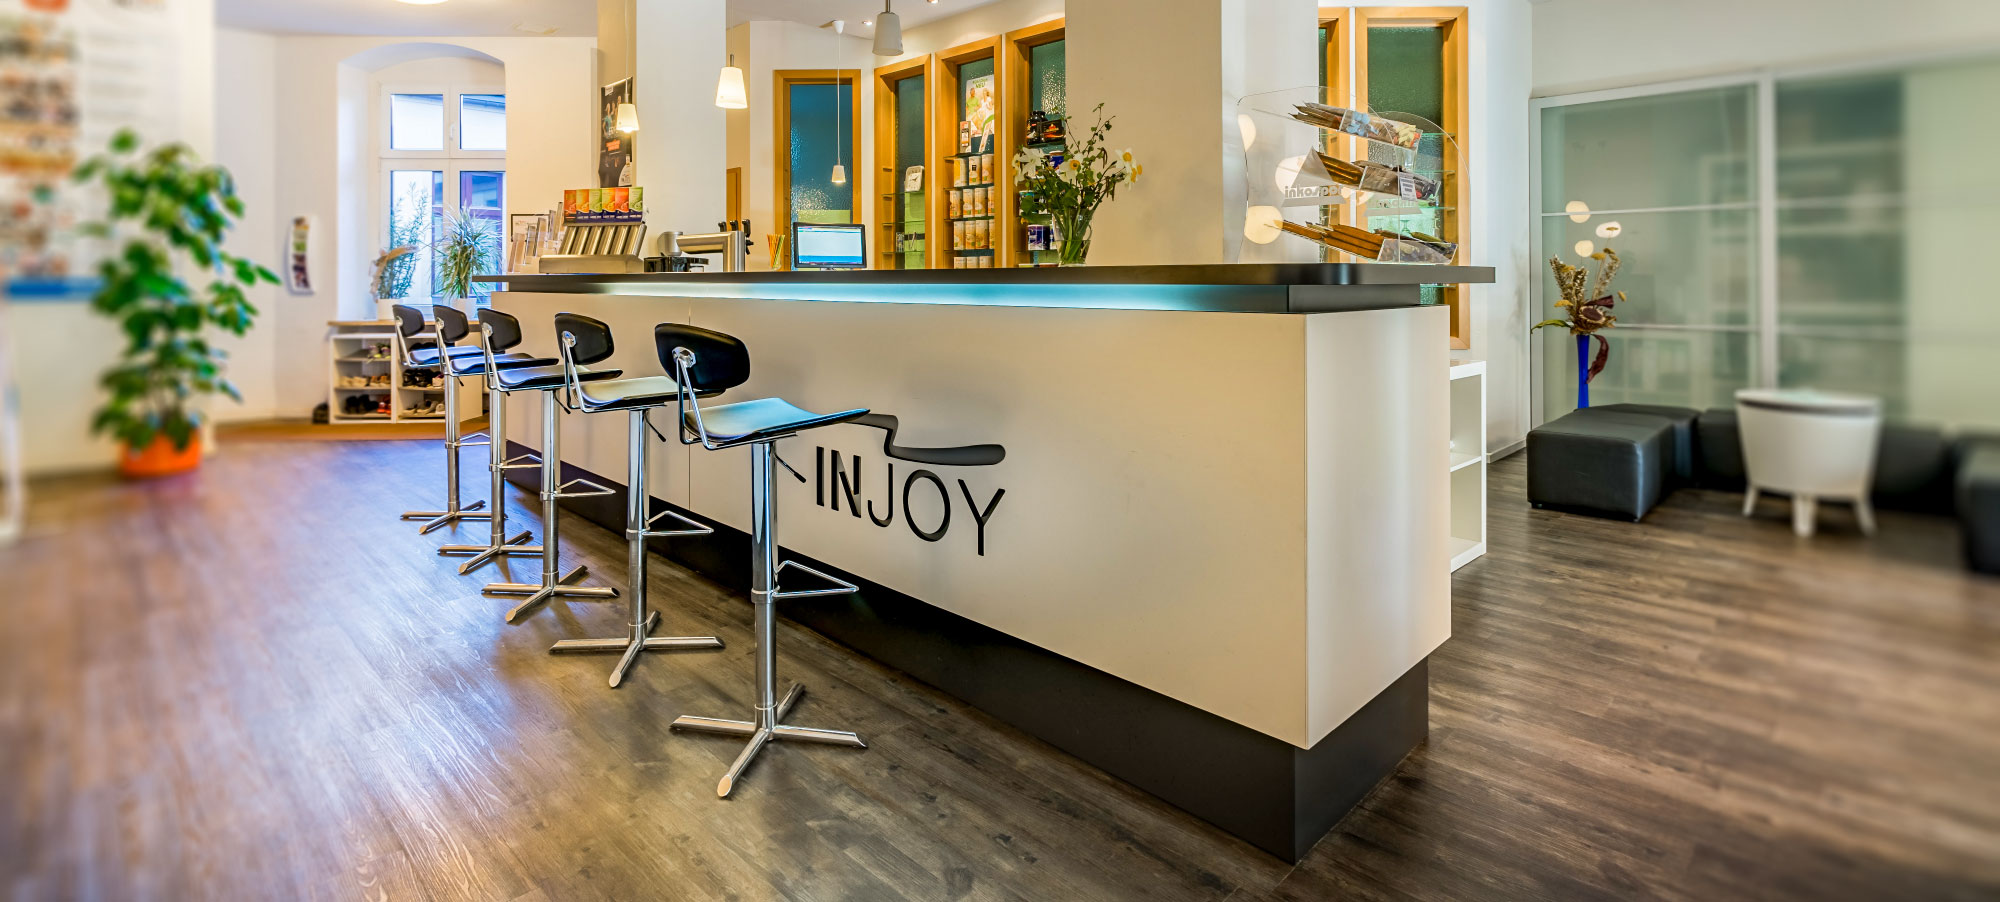 Das INJOY in Annaberg